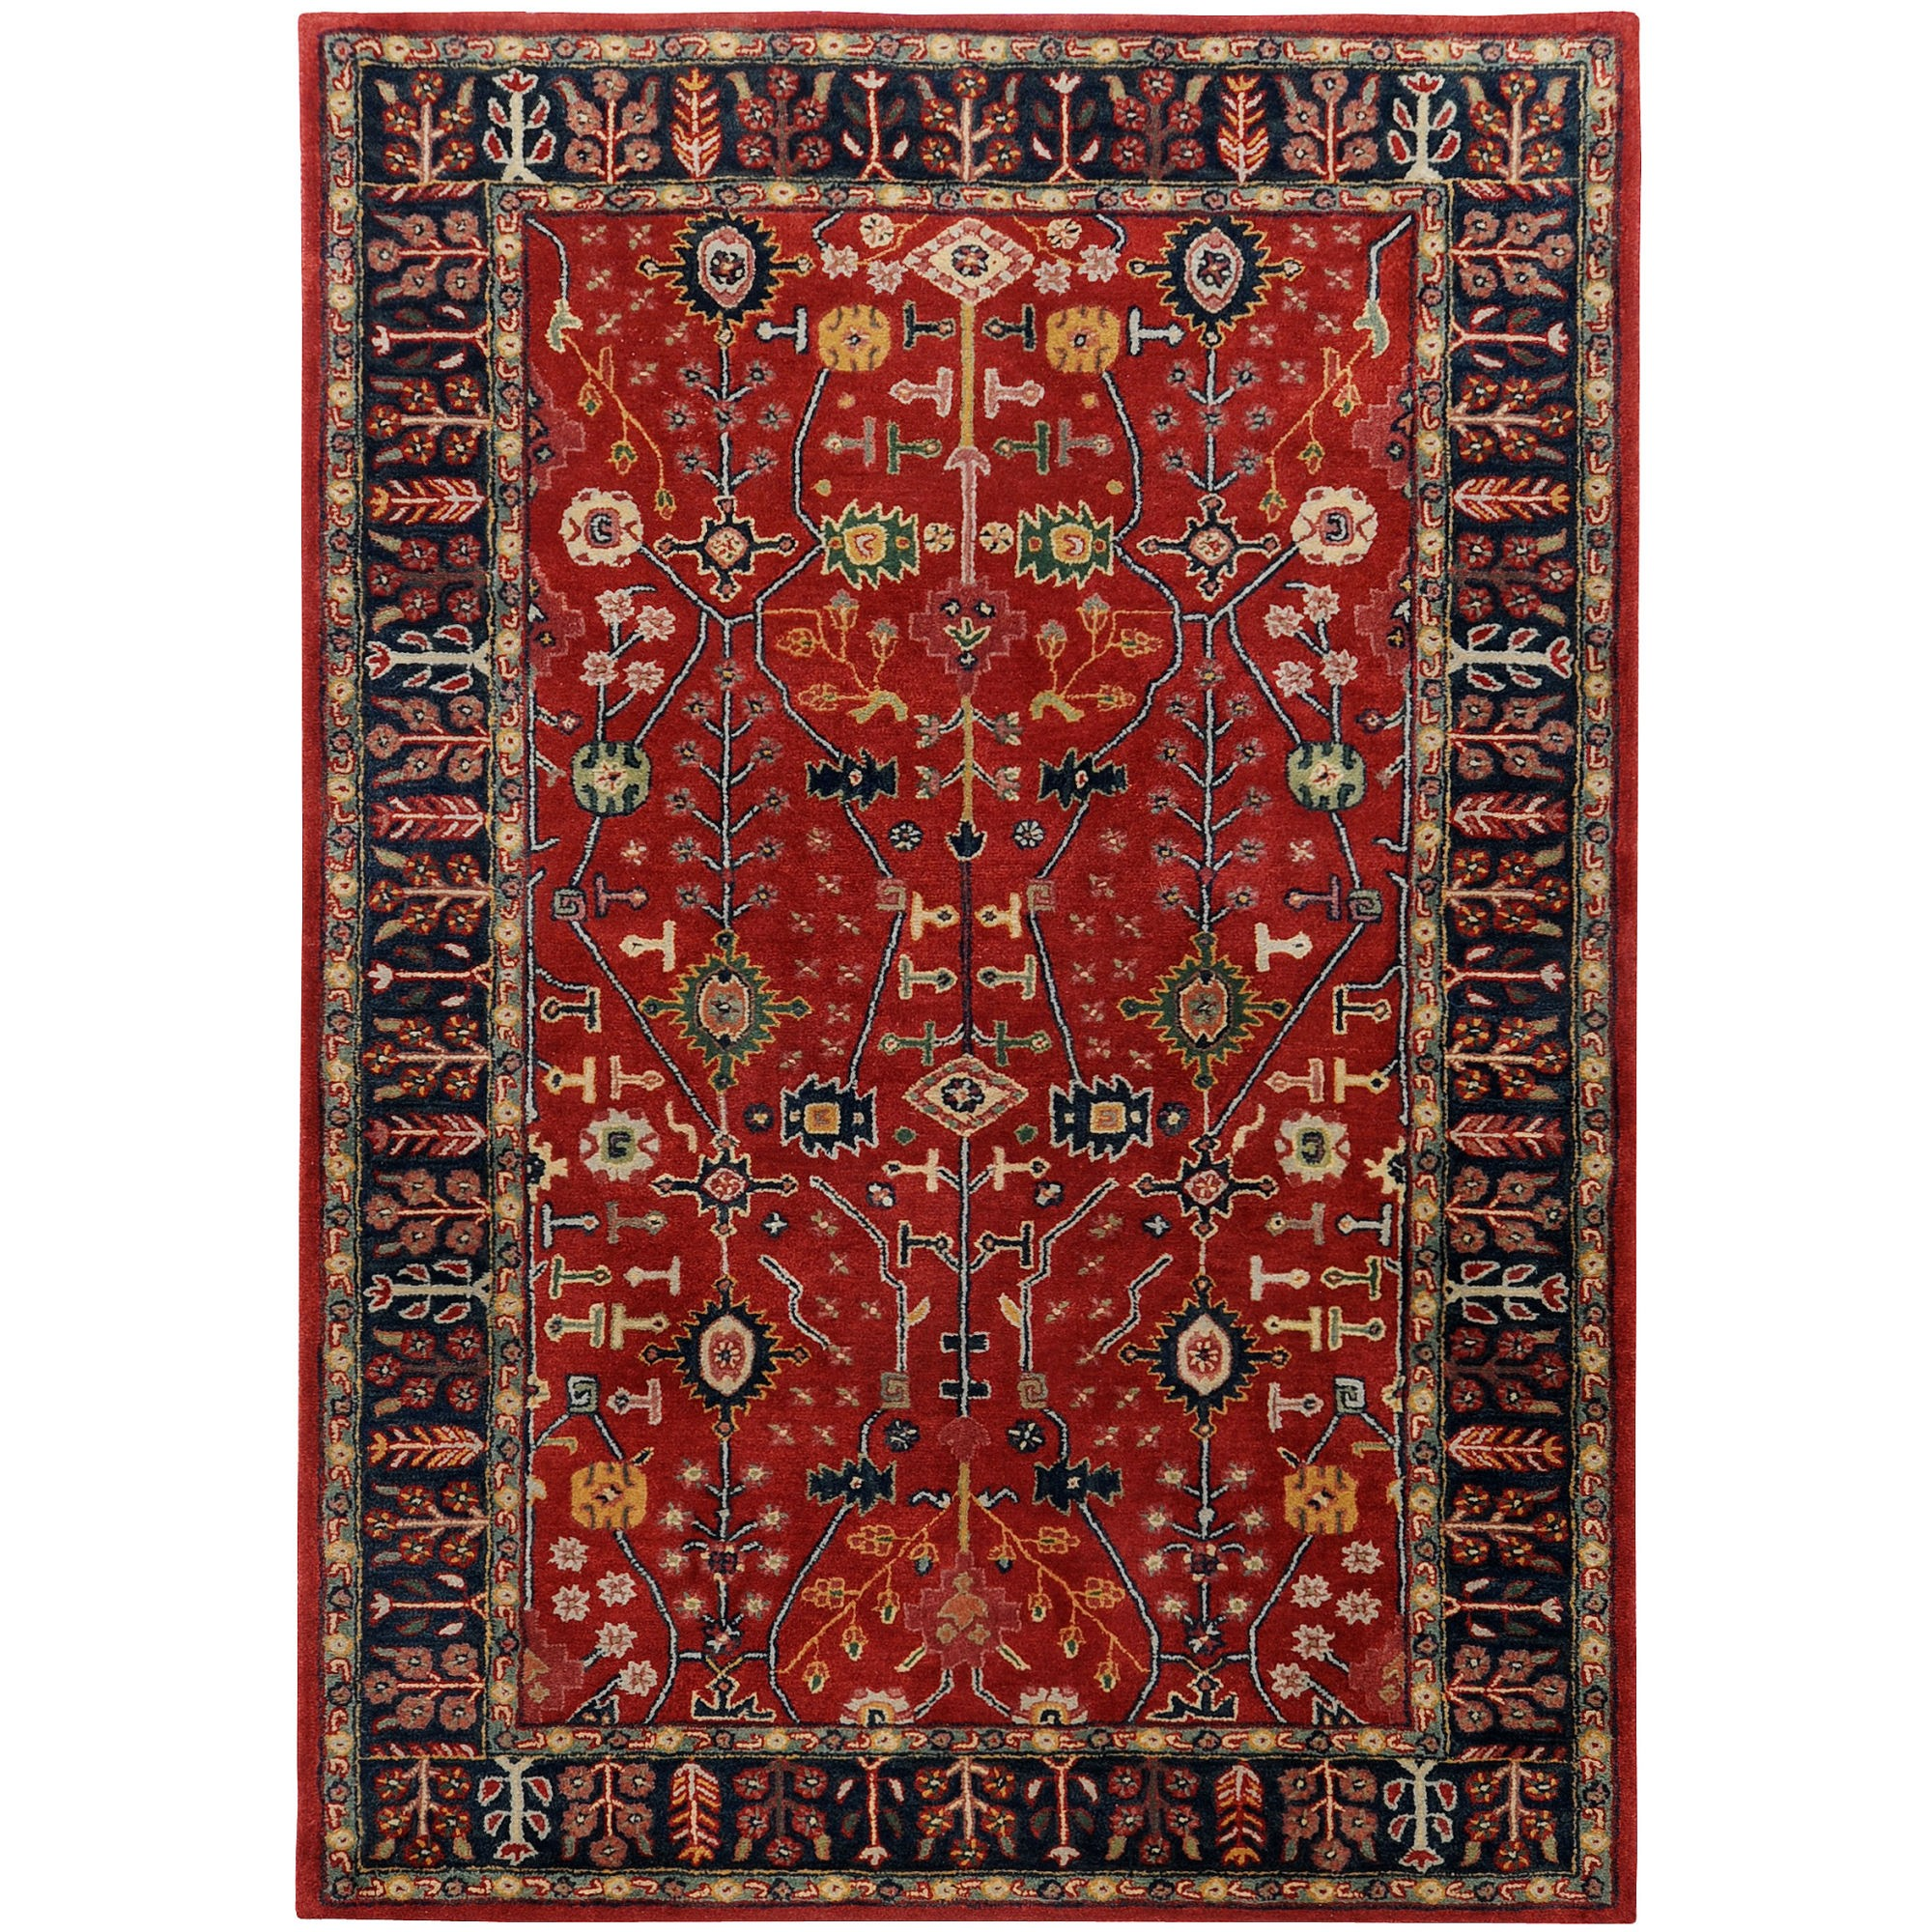 Popular Surya Ancient Treasures Red / Navy Oriental Rug - A135 red persian rug